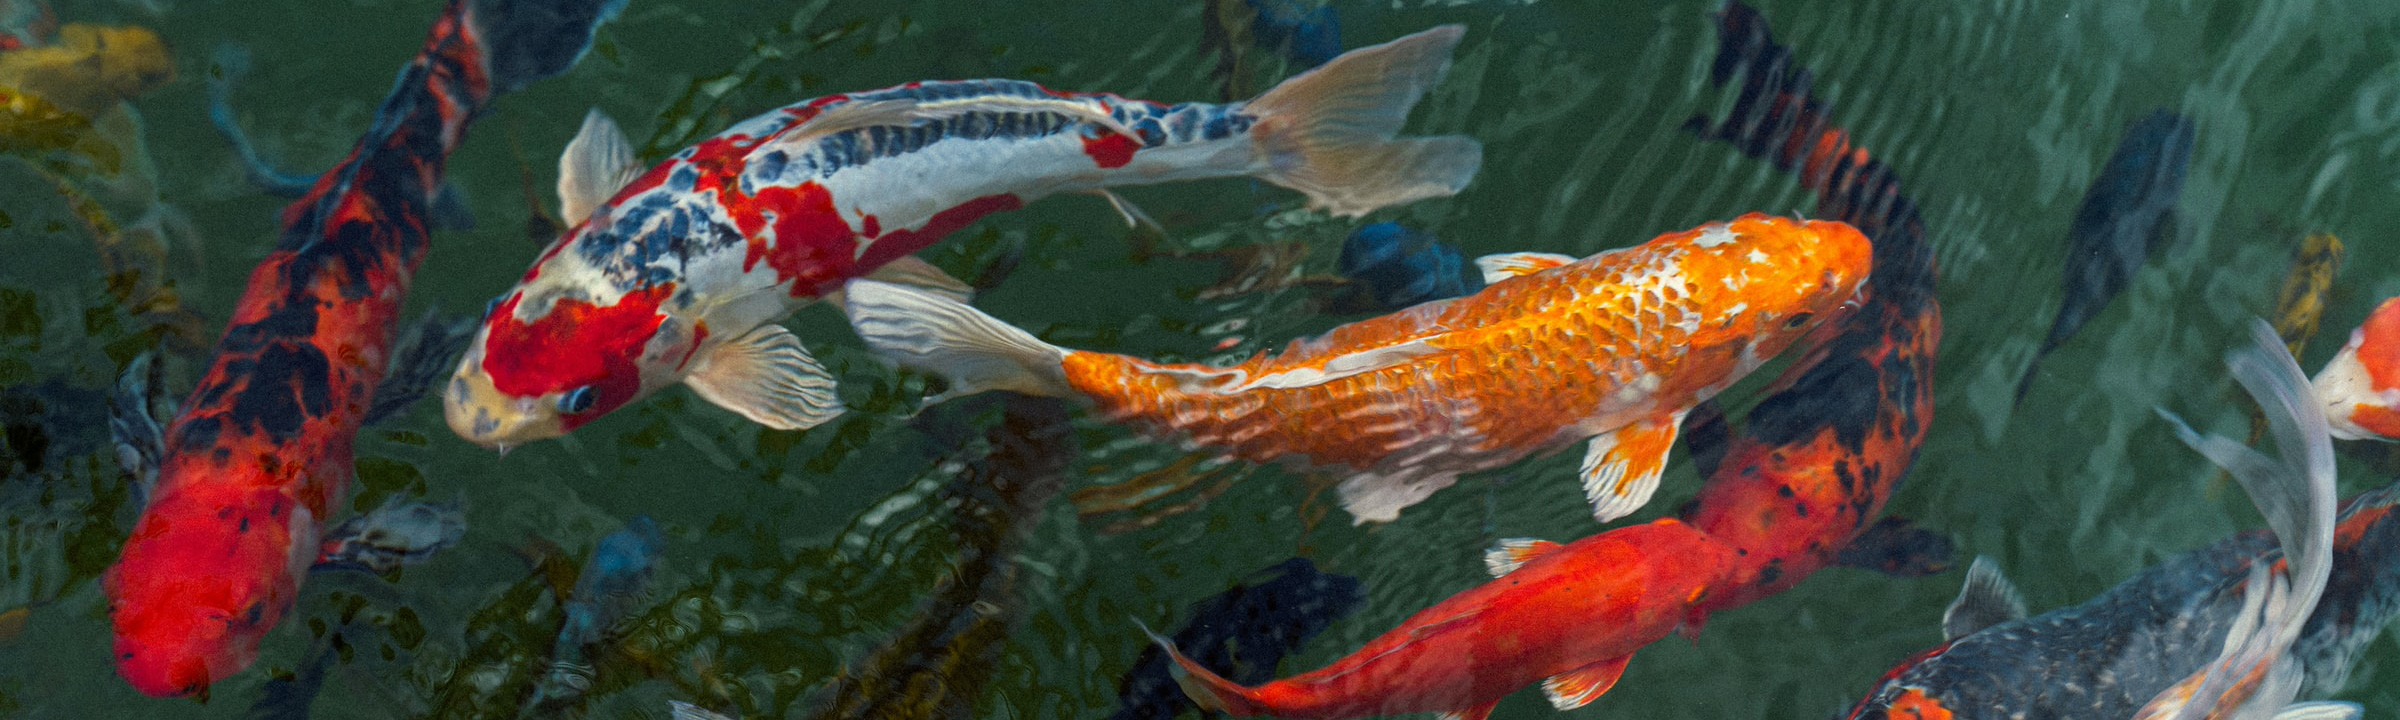 Colorful koi in a pond.